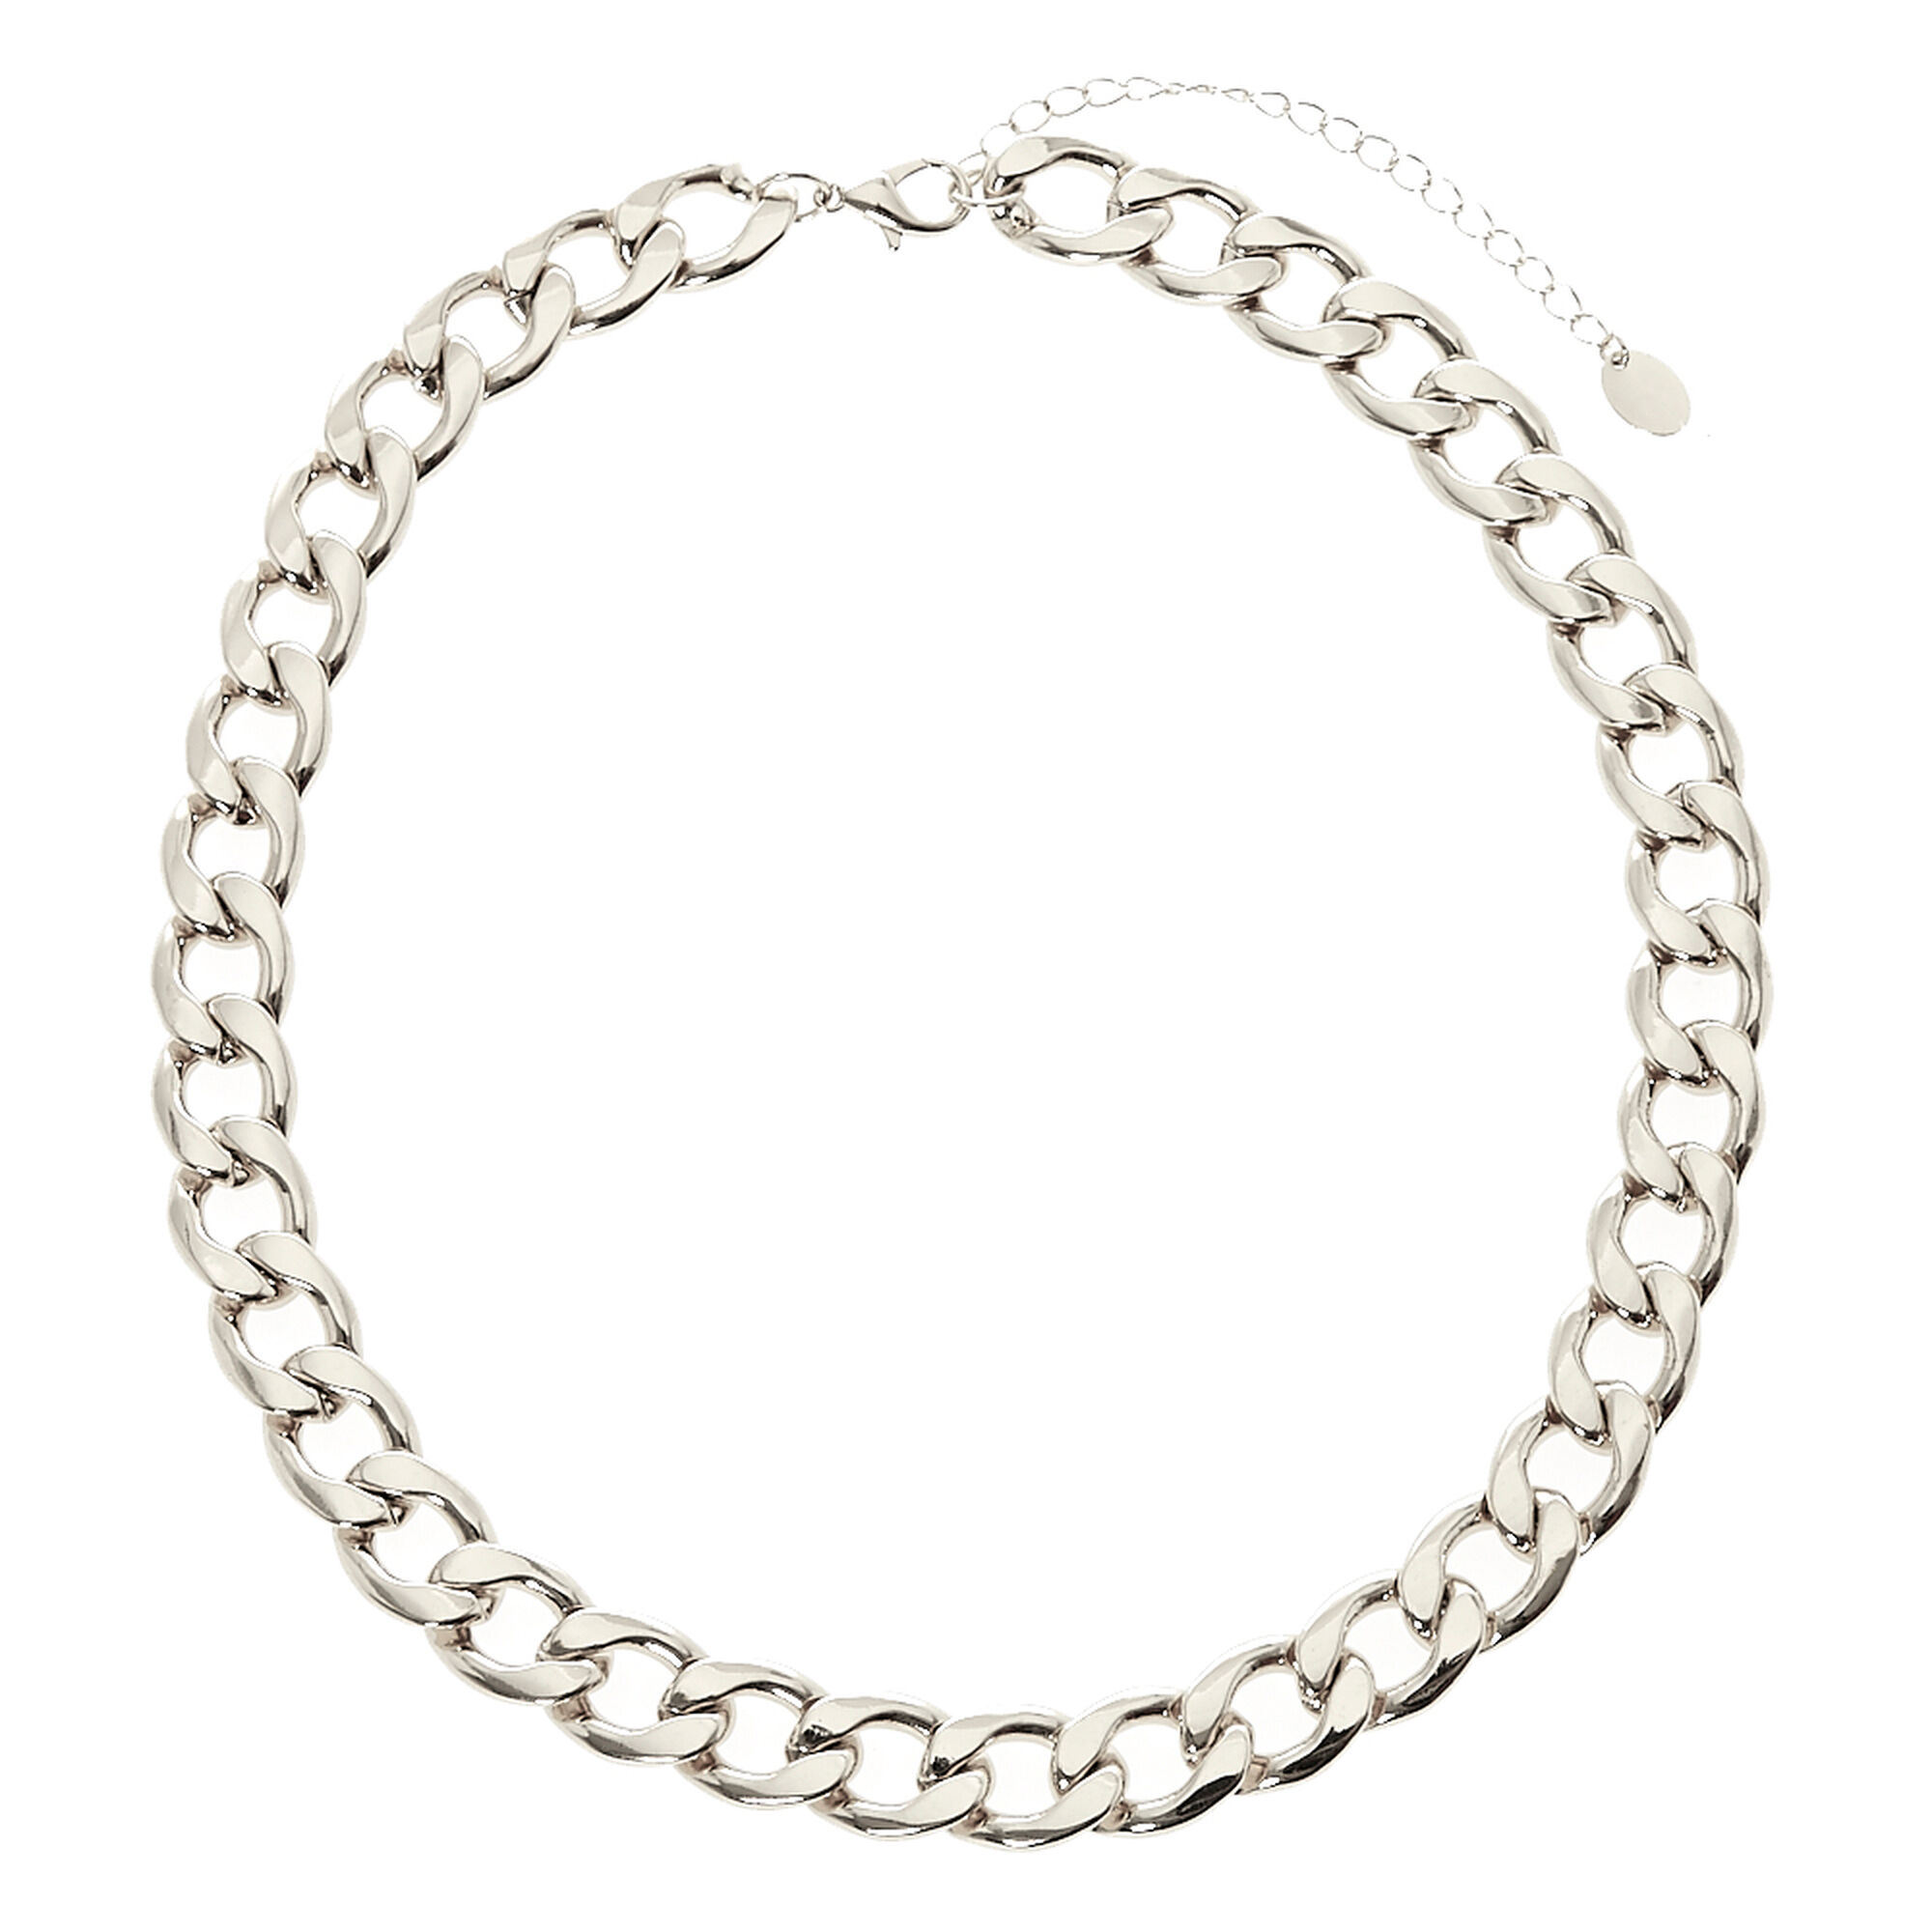 buy india silver dsc shubhki chain jewellery rolo online product design for in men